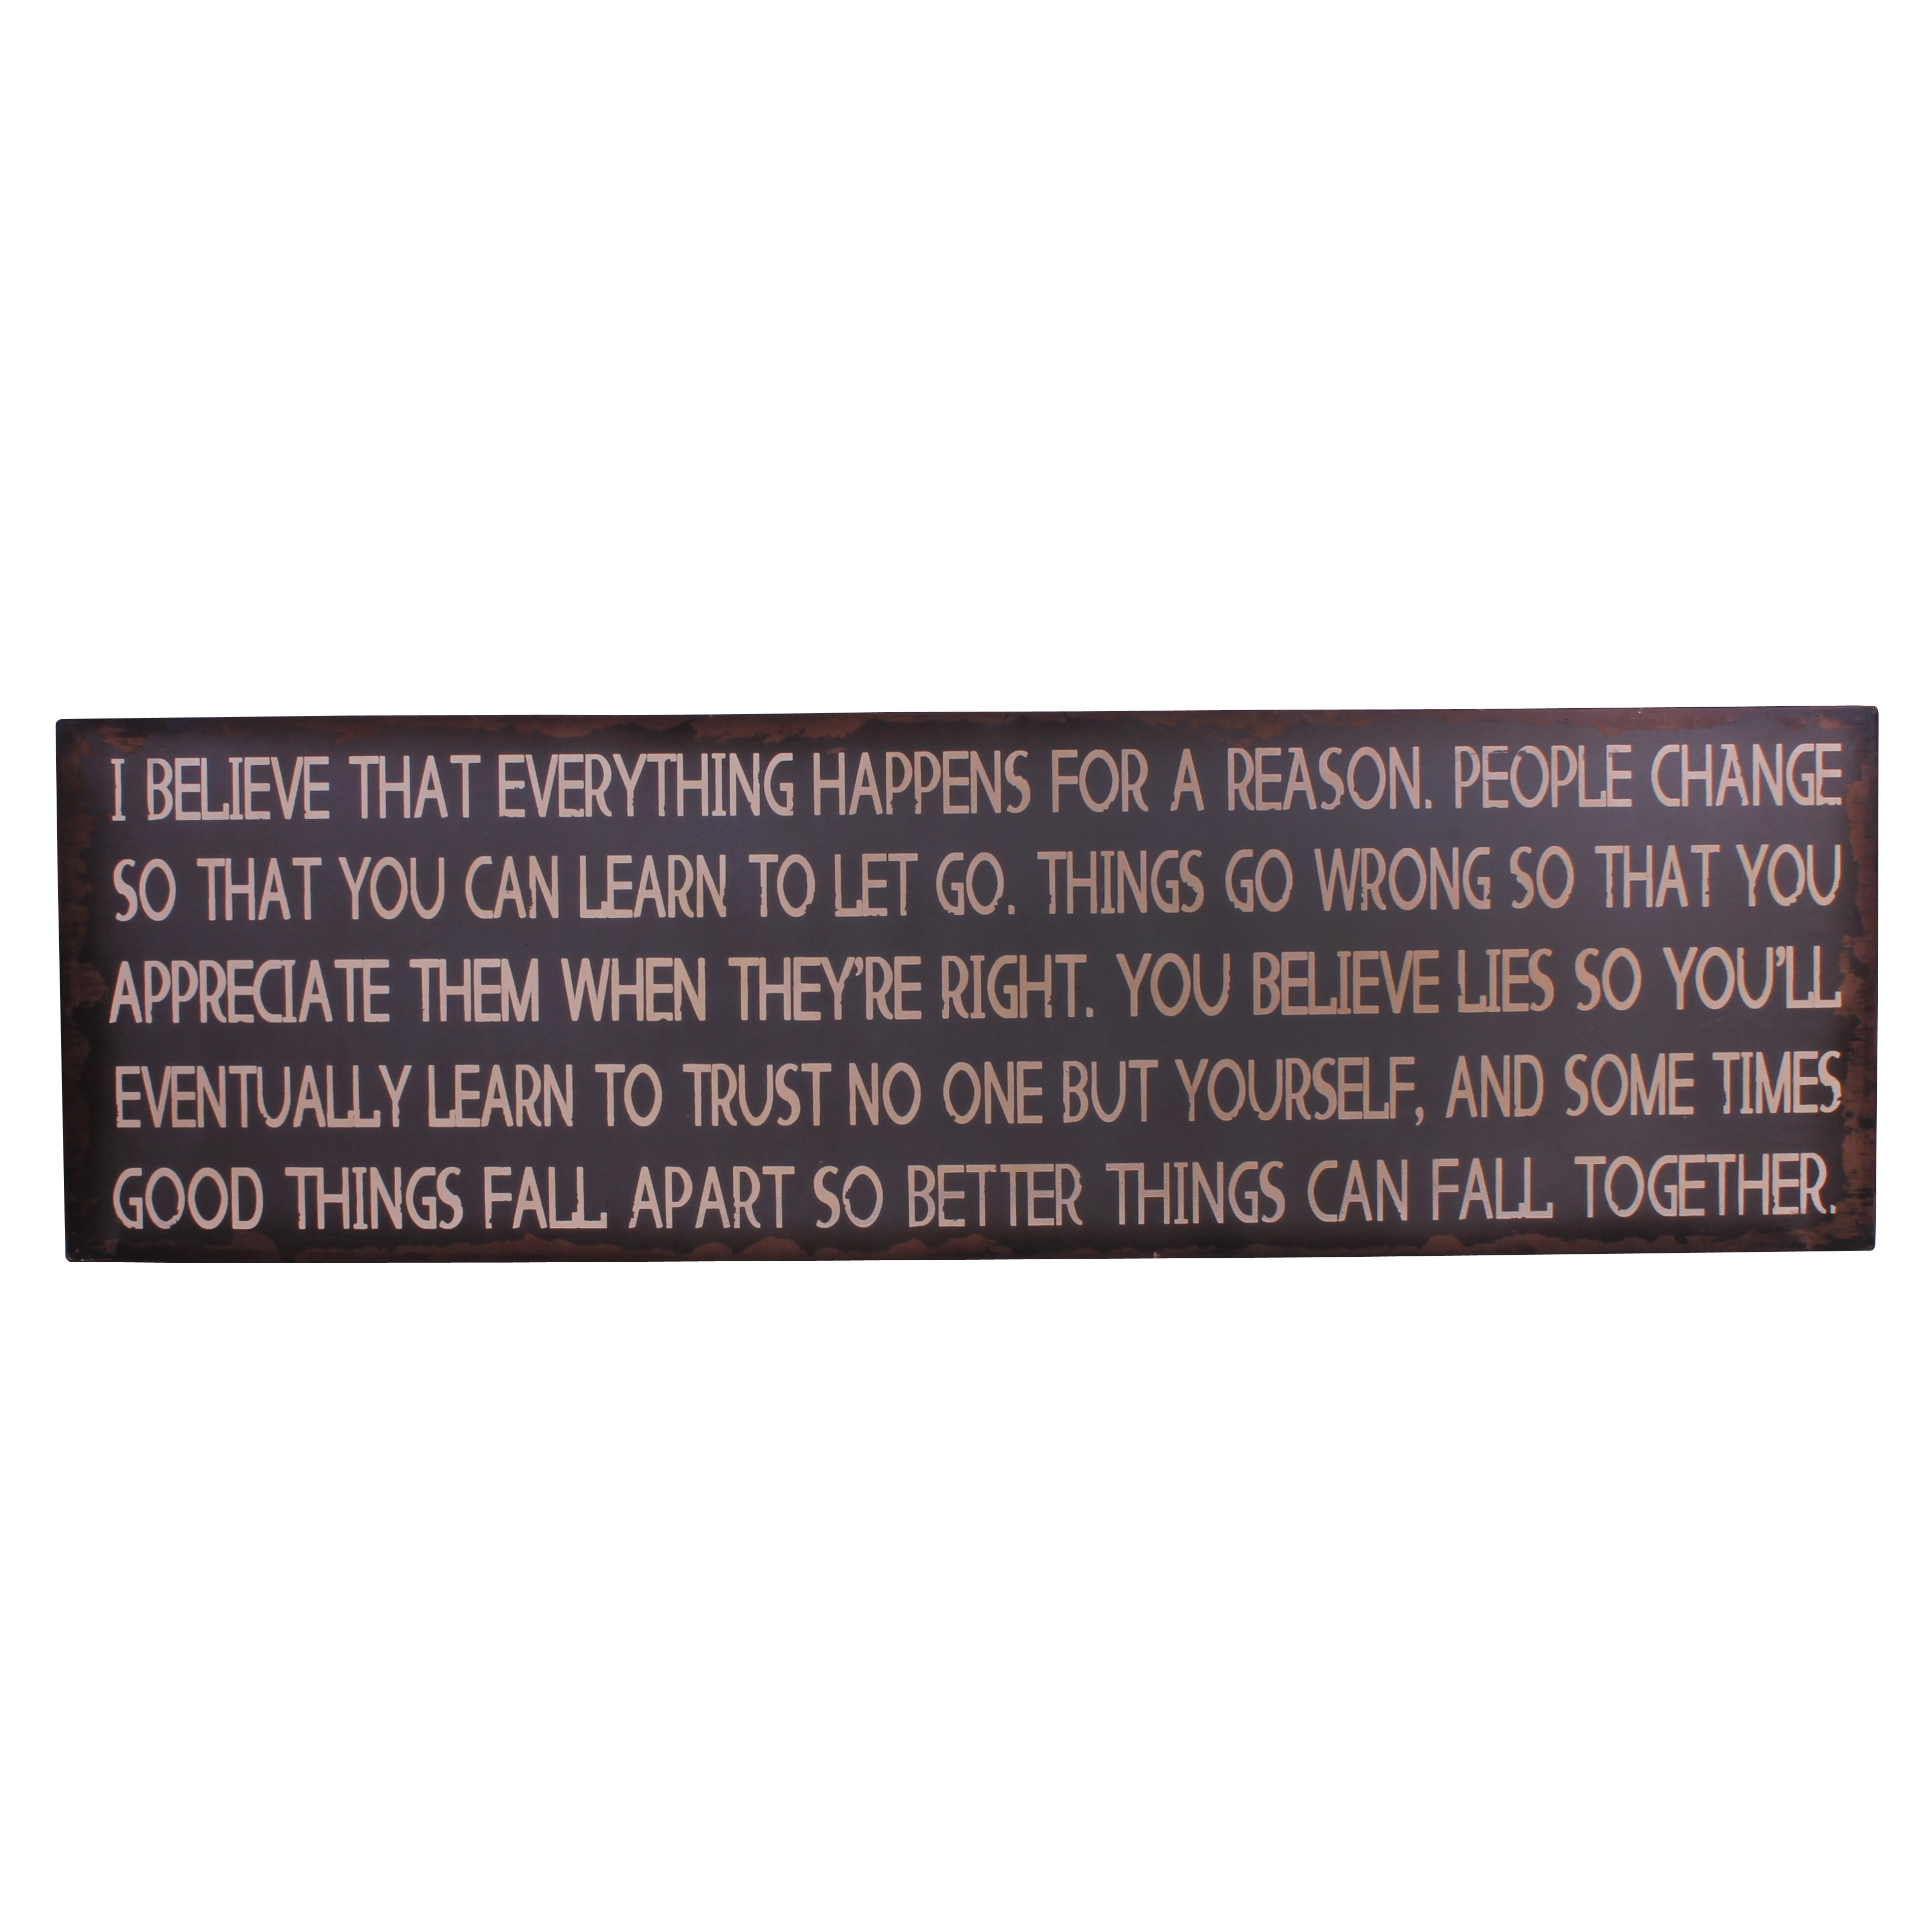 i believe everything happens for a reason essay